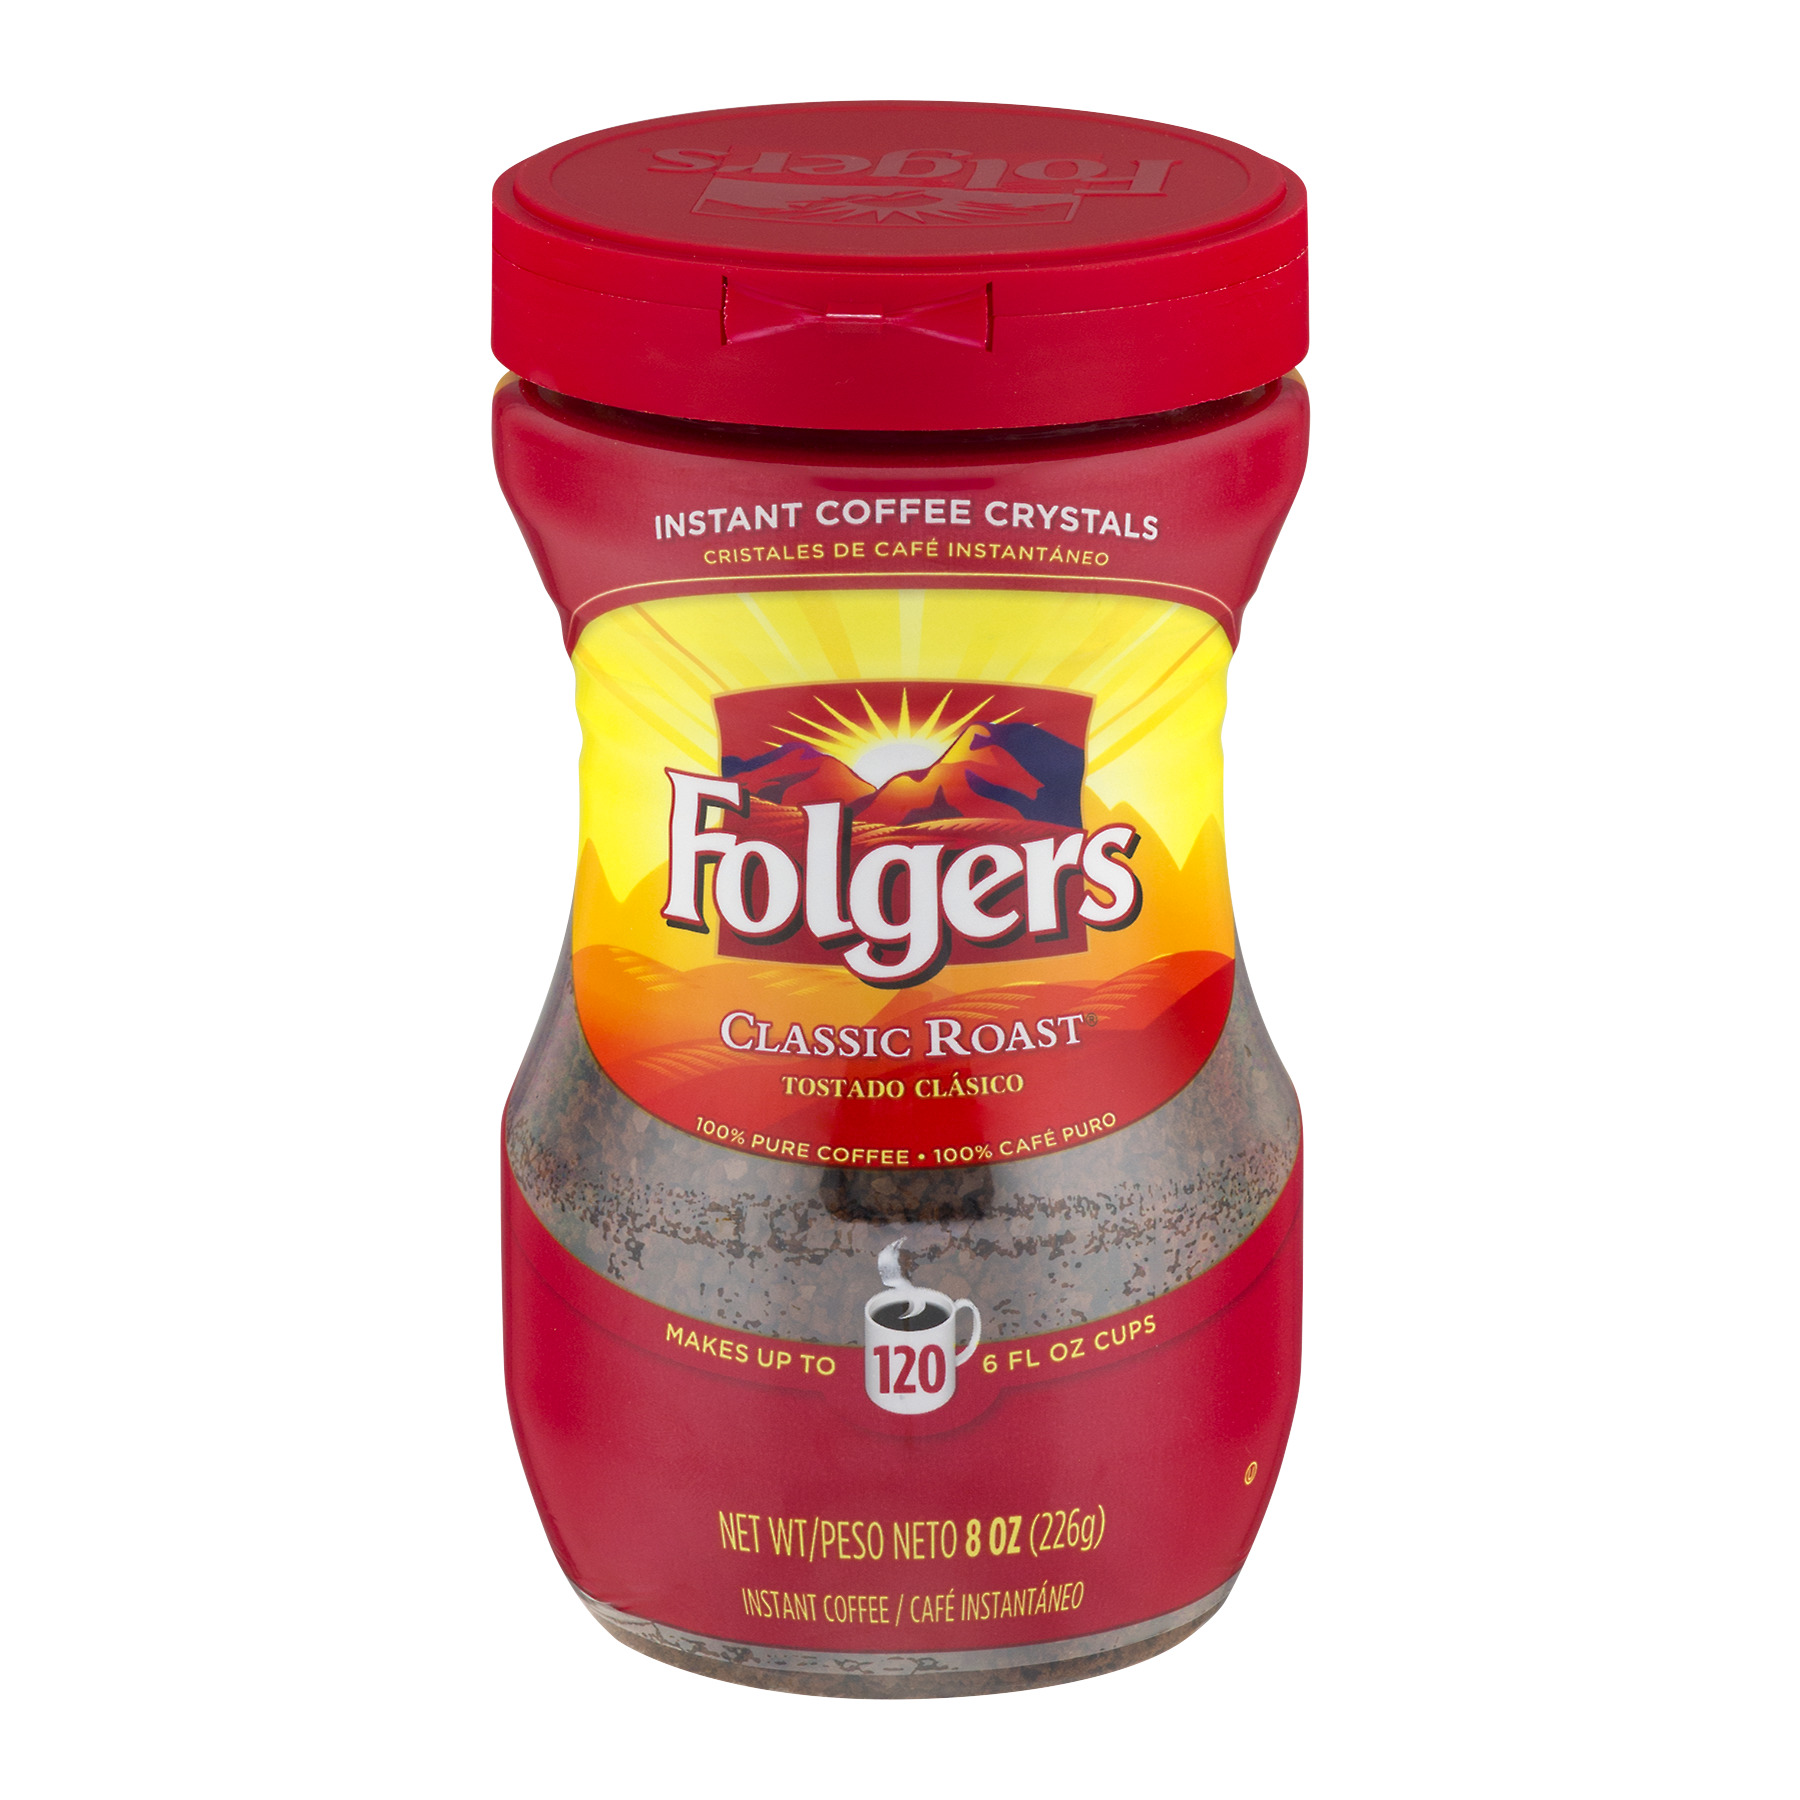 Folgers Instant Coffee Crystals Classic Roast, 8.0 OZ